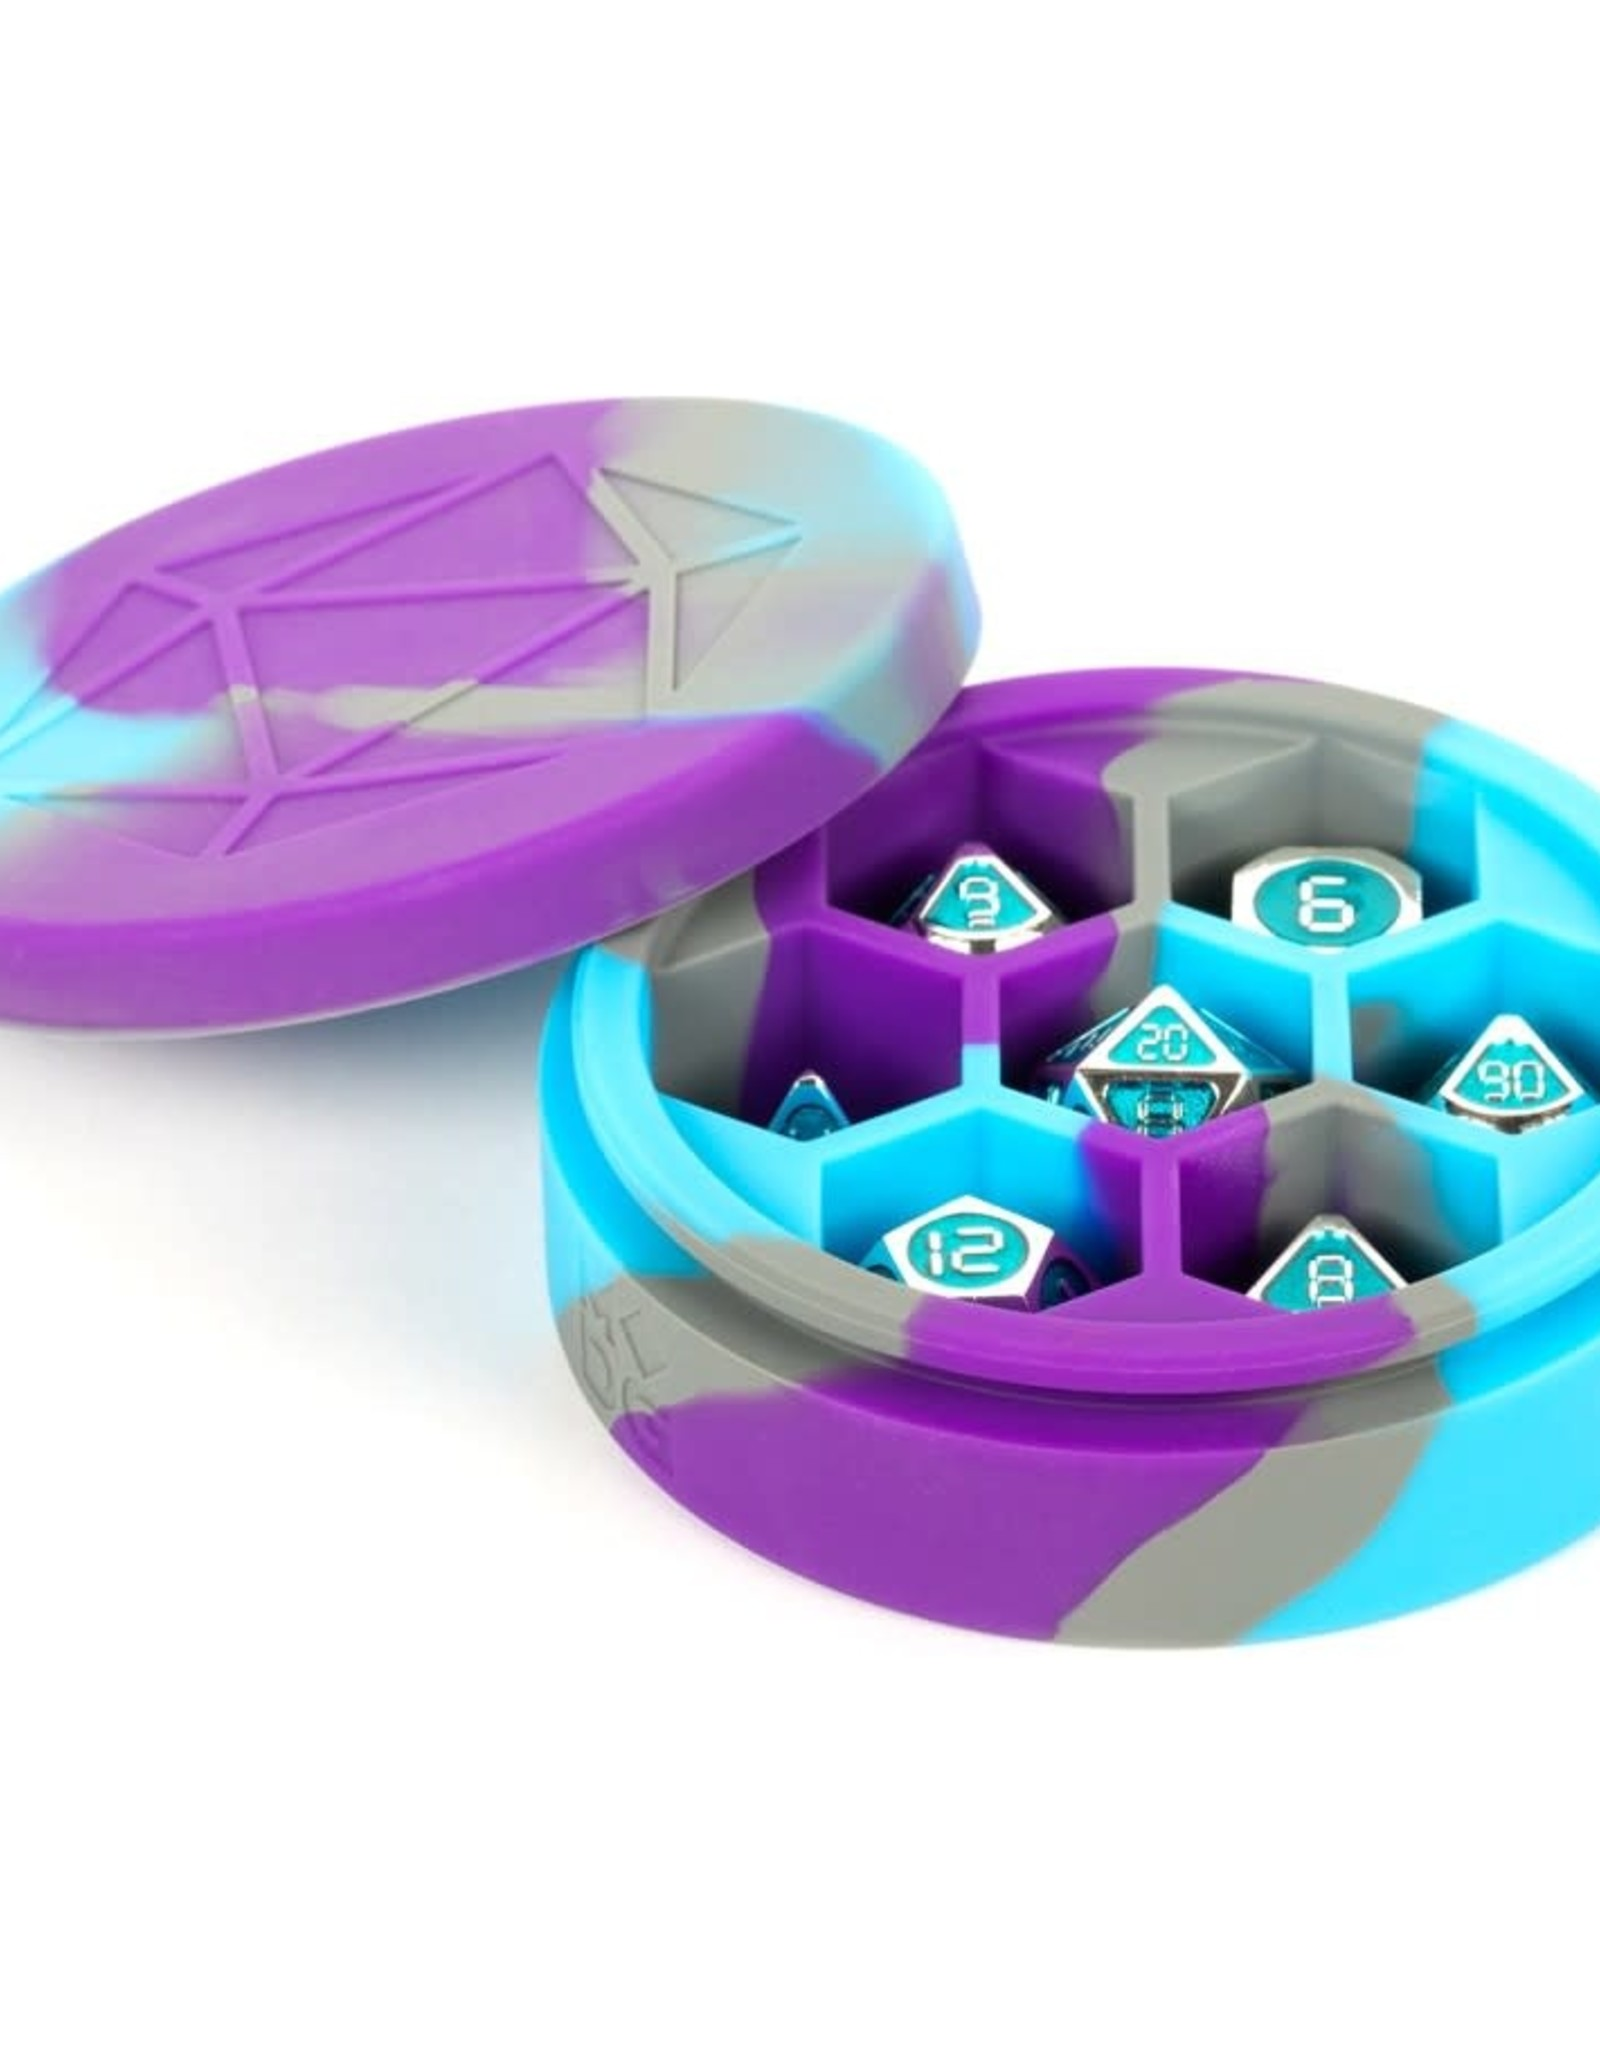 Metallic Dice Games Silicone Round Dice Case: Purple/Grey/Light Blue